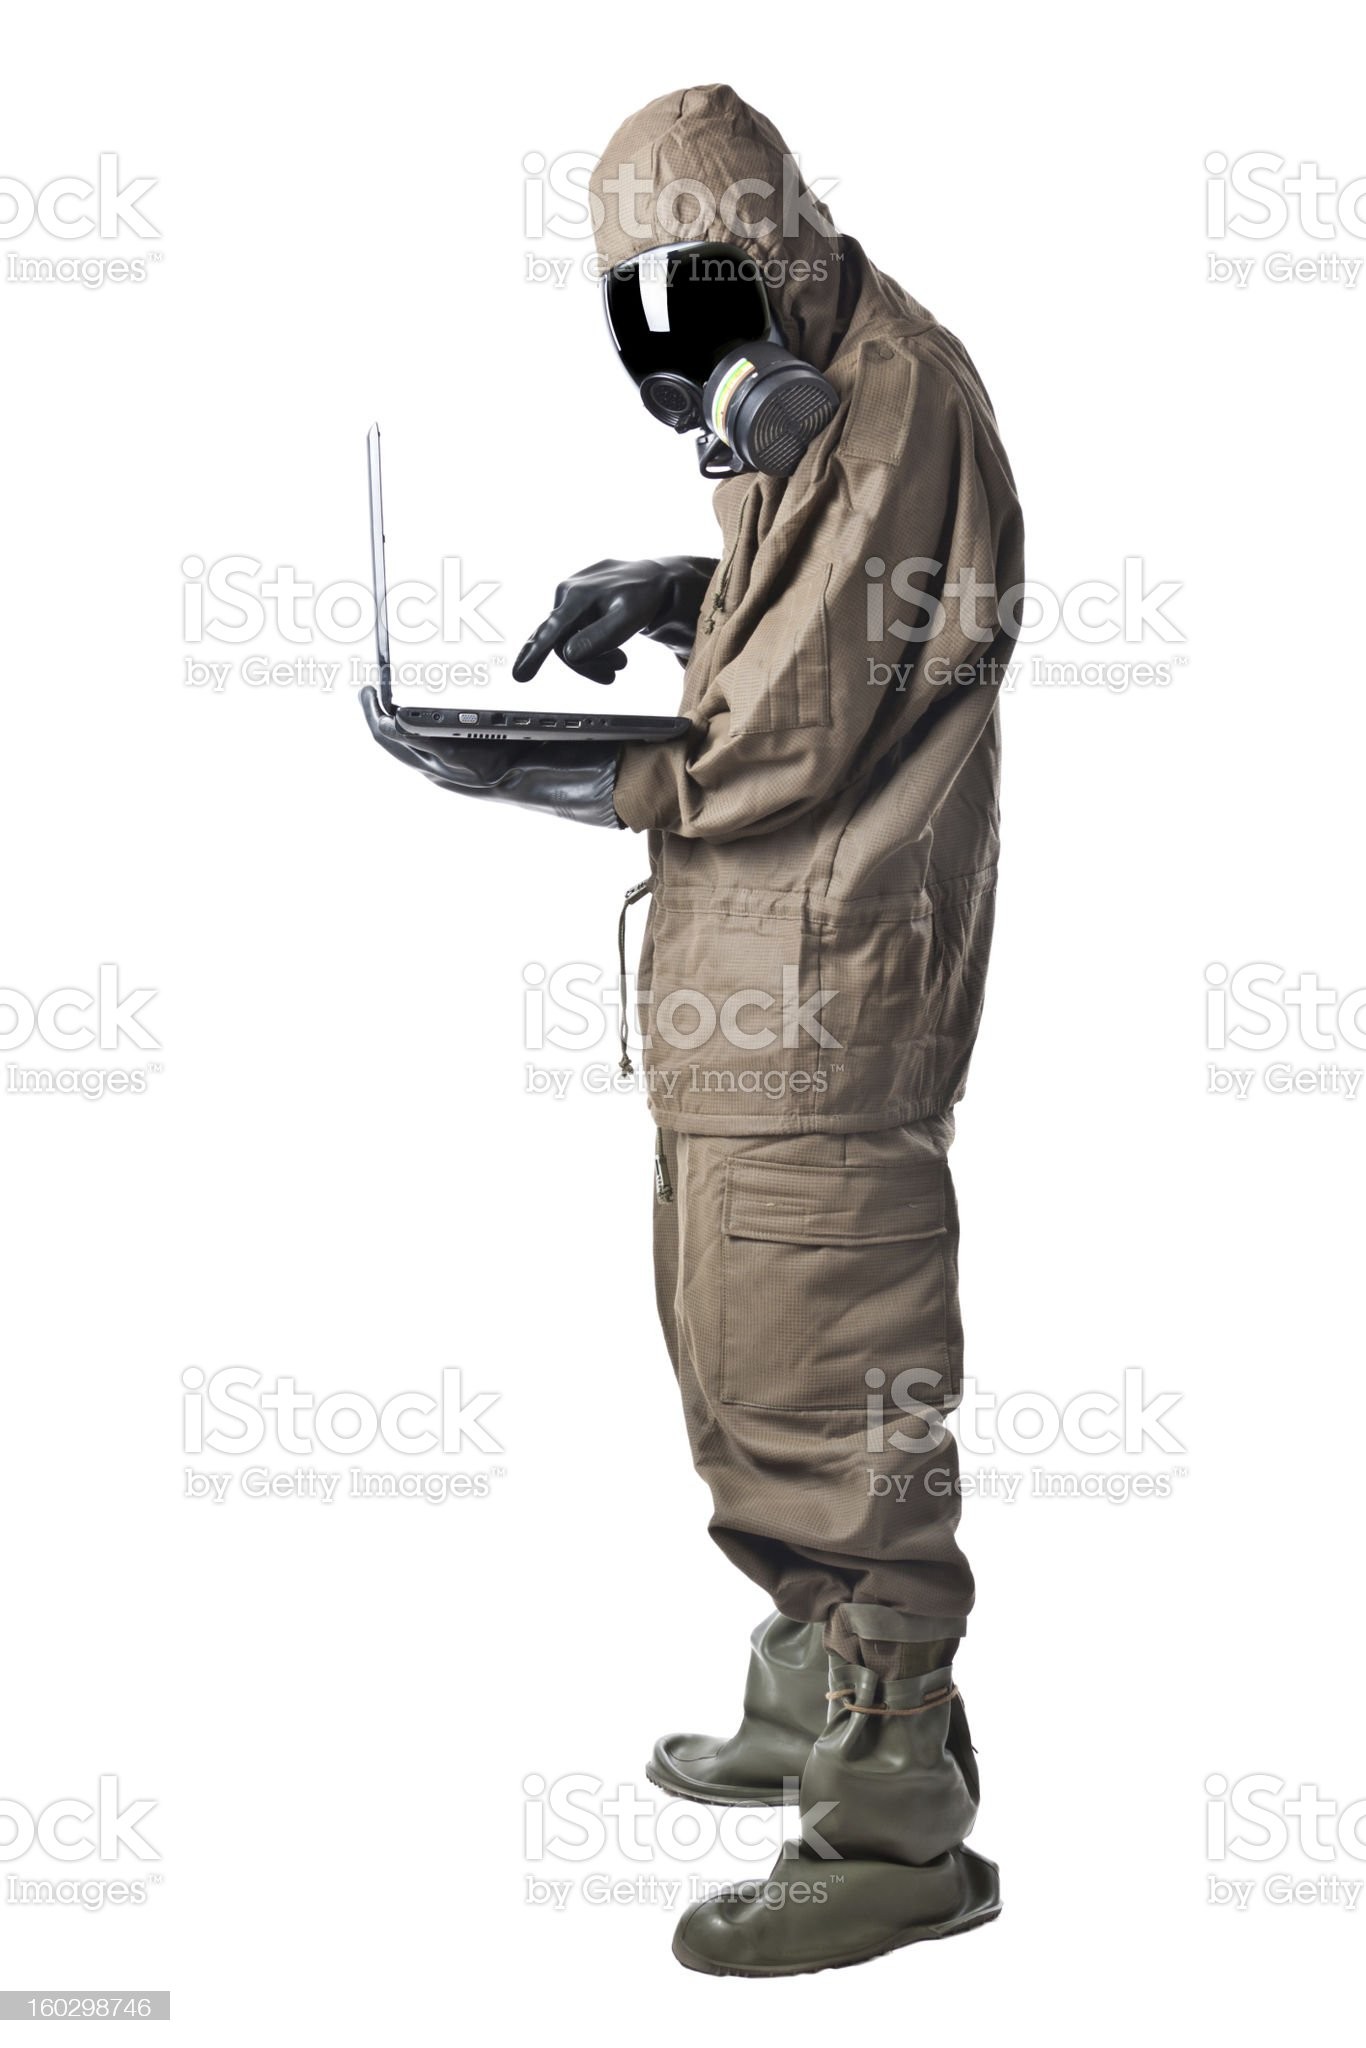 Safer internet browsing royalty-free stock photo